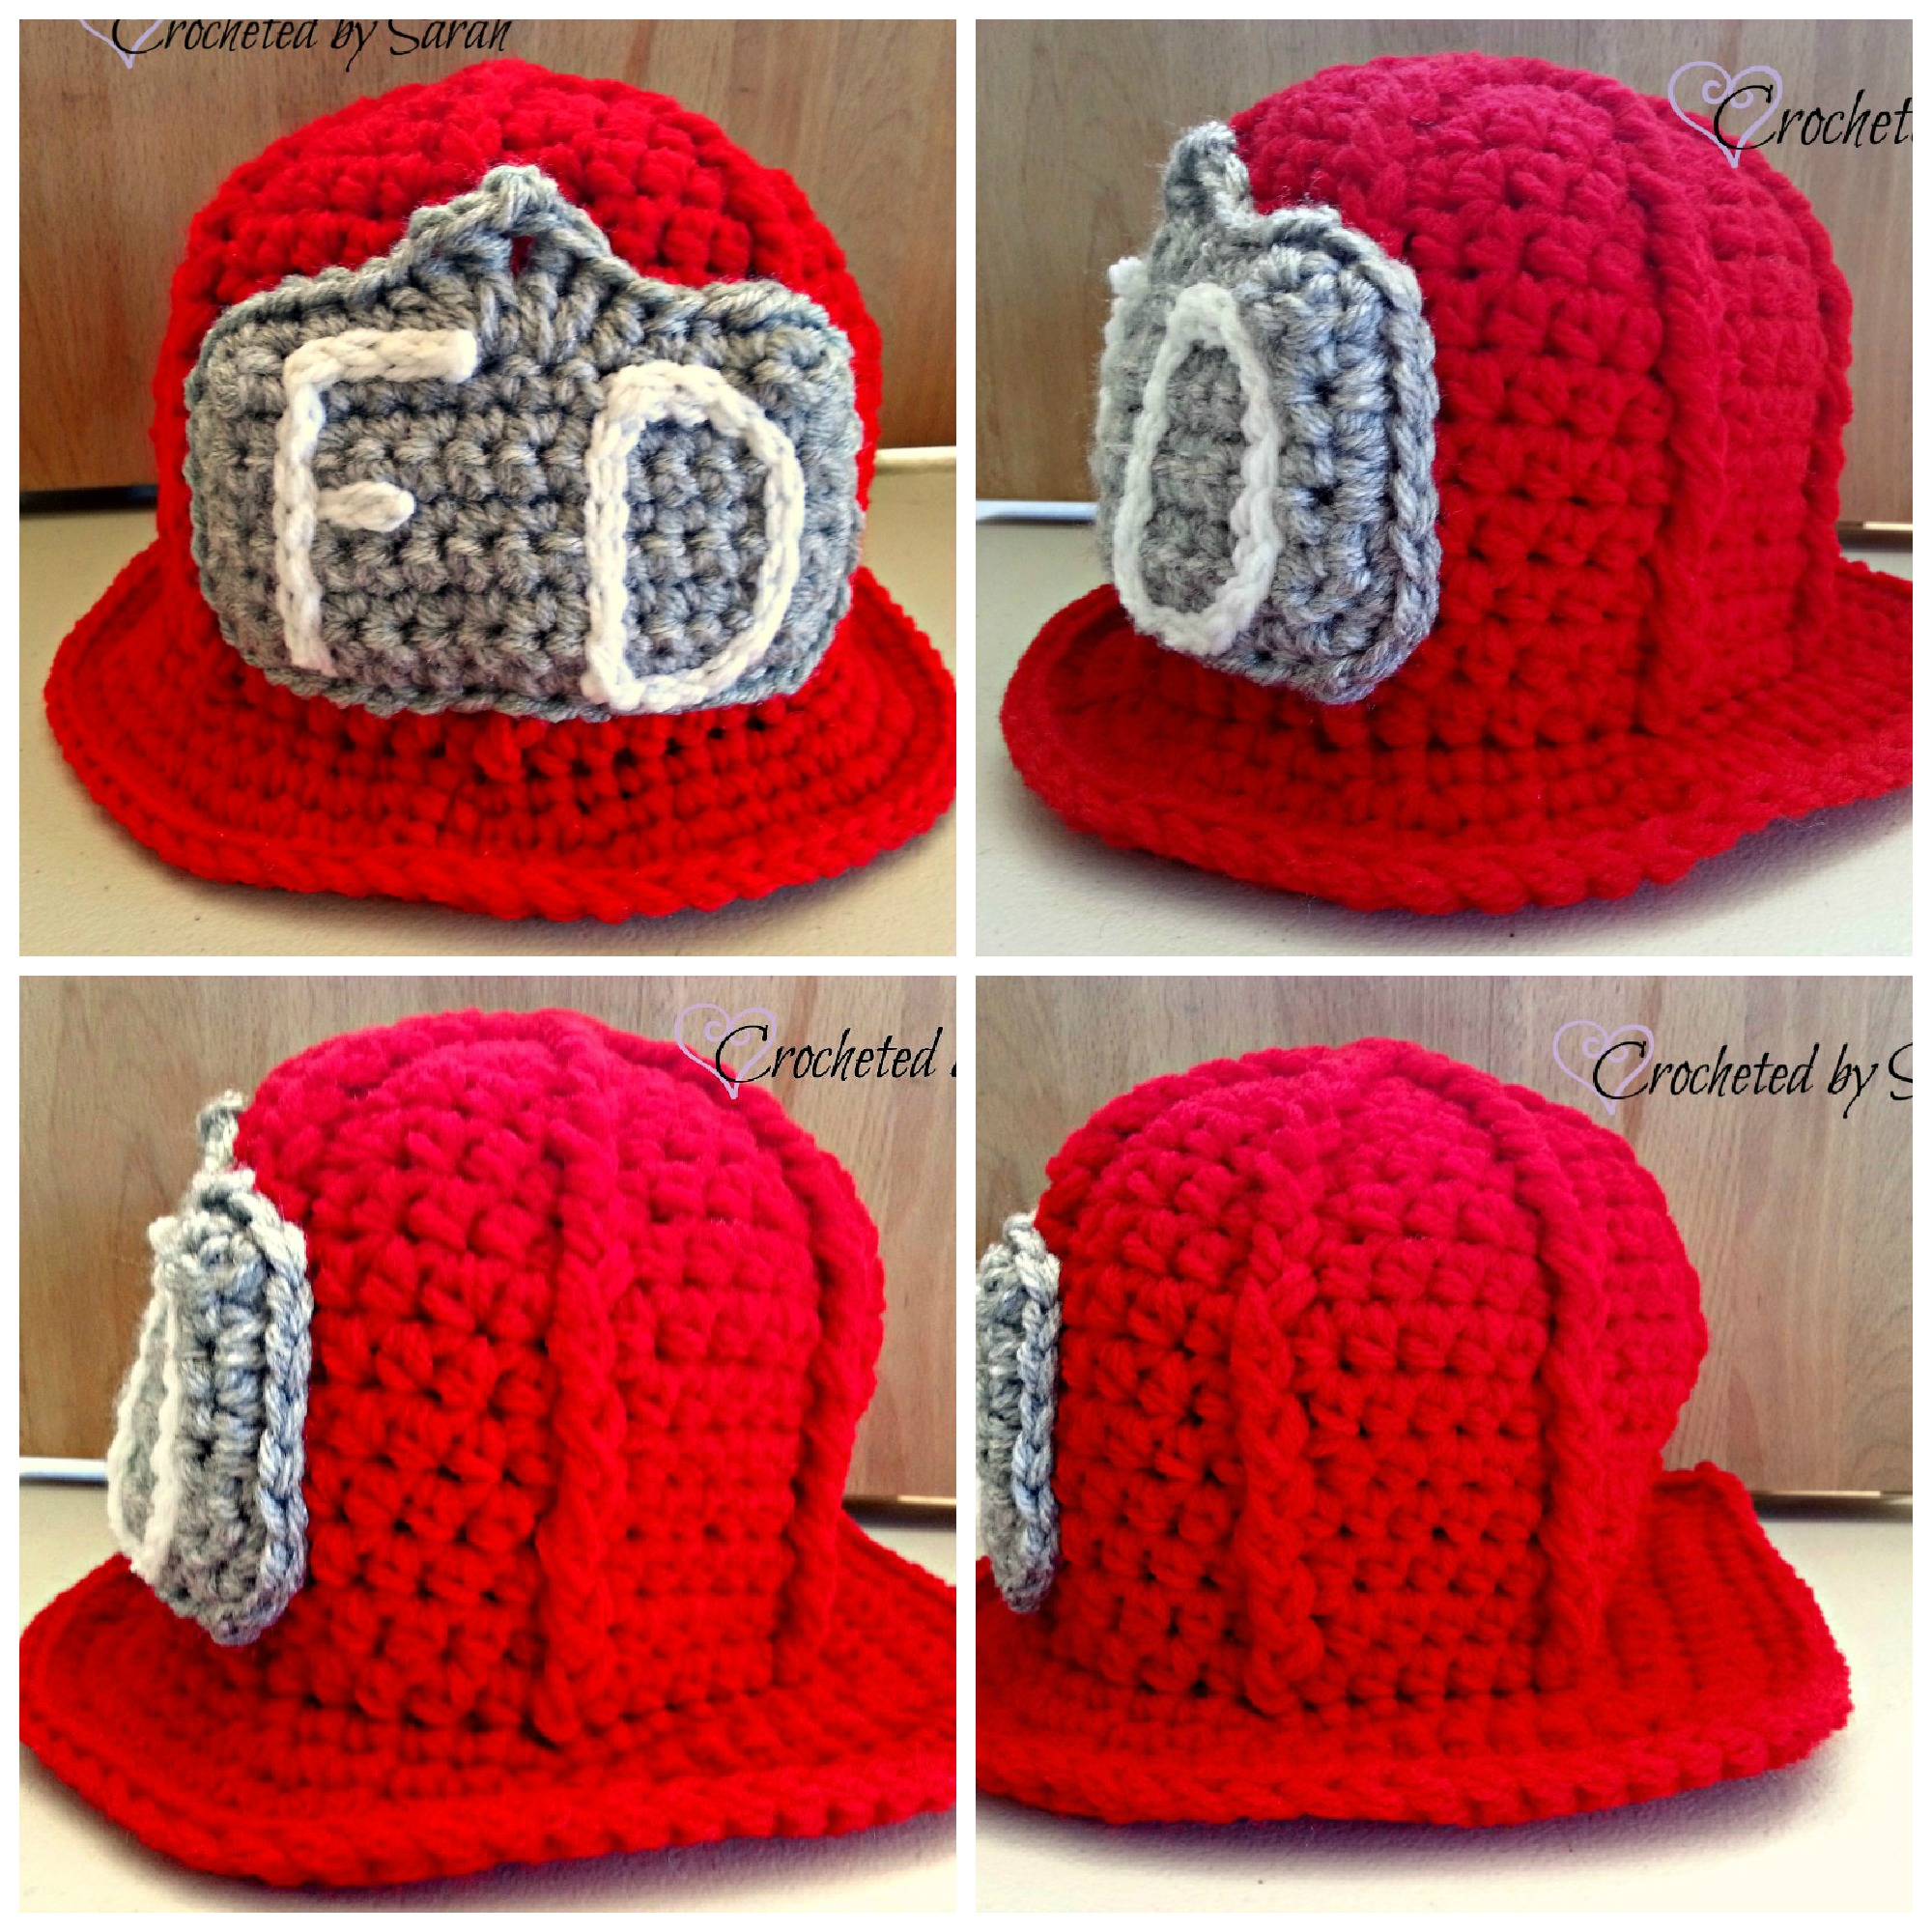 Crochet Pattern For Baby Fireman Hat : Whimsy Stitch by Sarah Handmade items for you and your ...